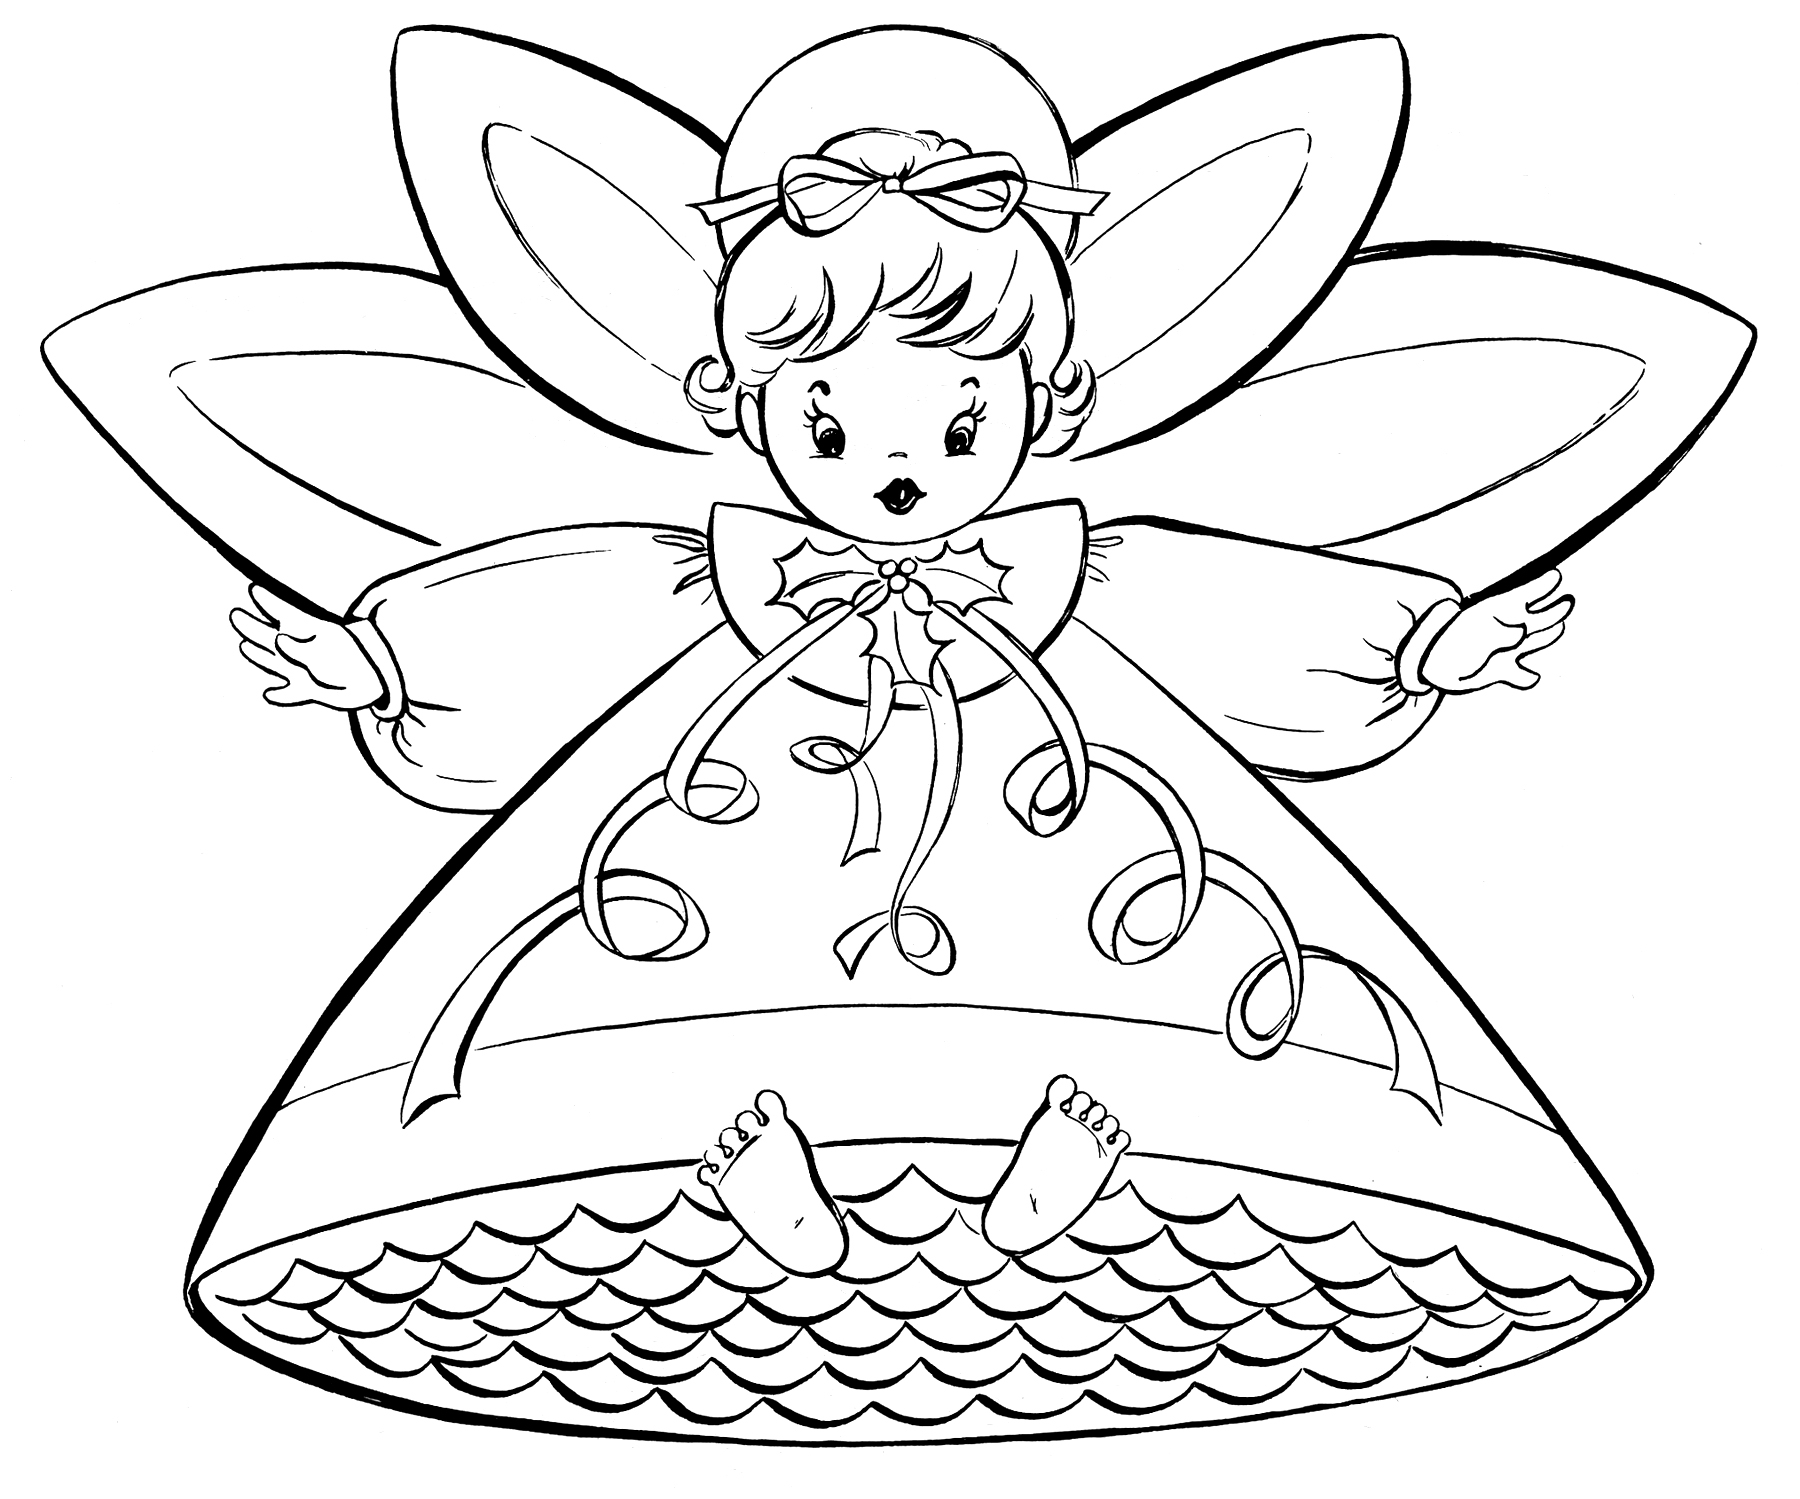 free christmas coloring pages - Christmas Coloring Pages To Print Free